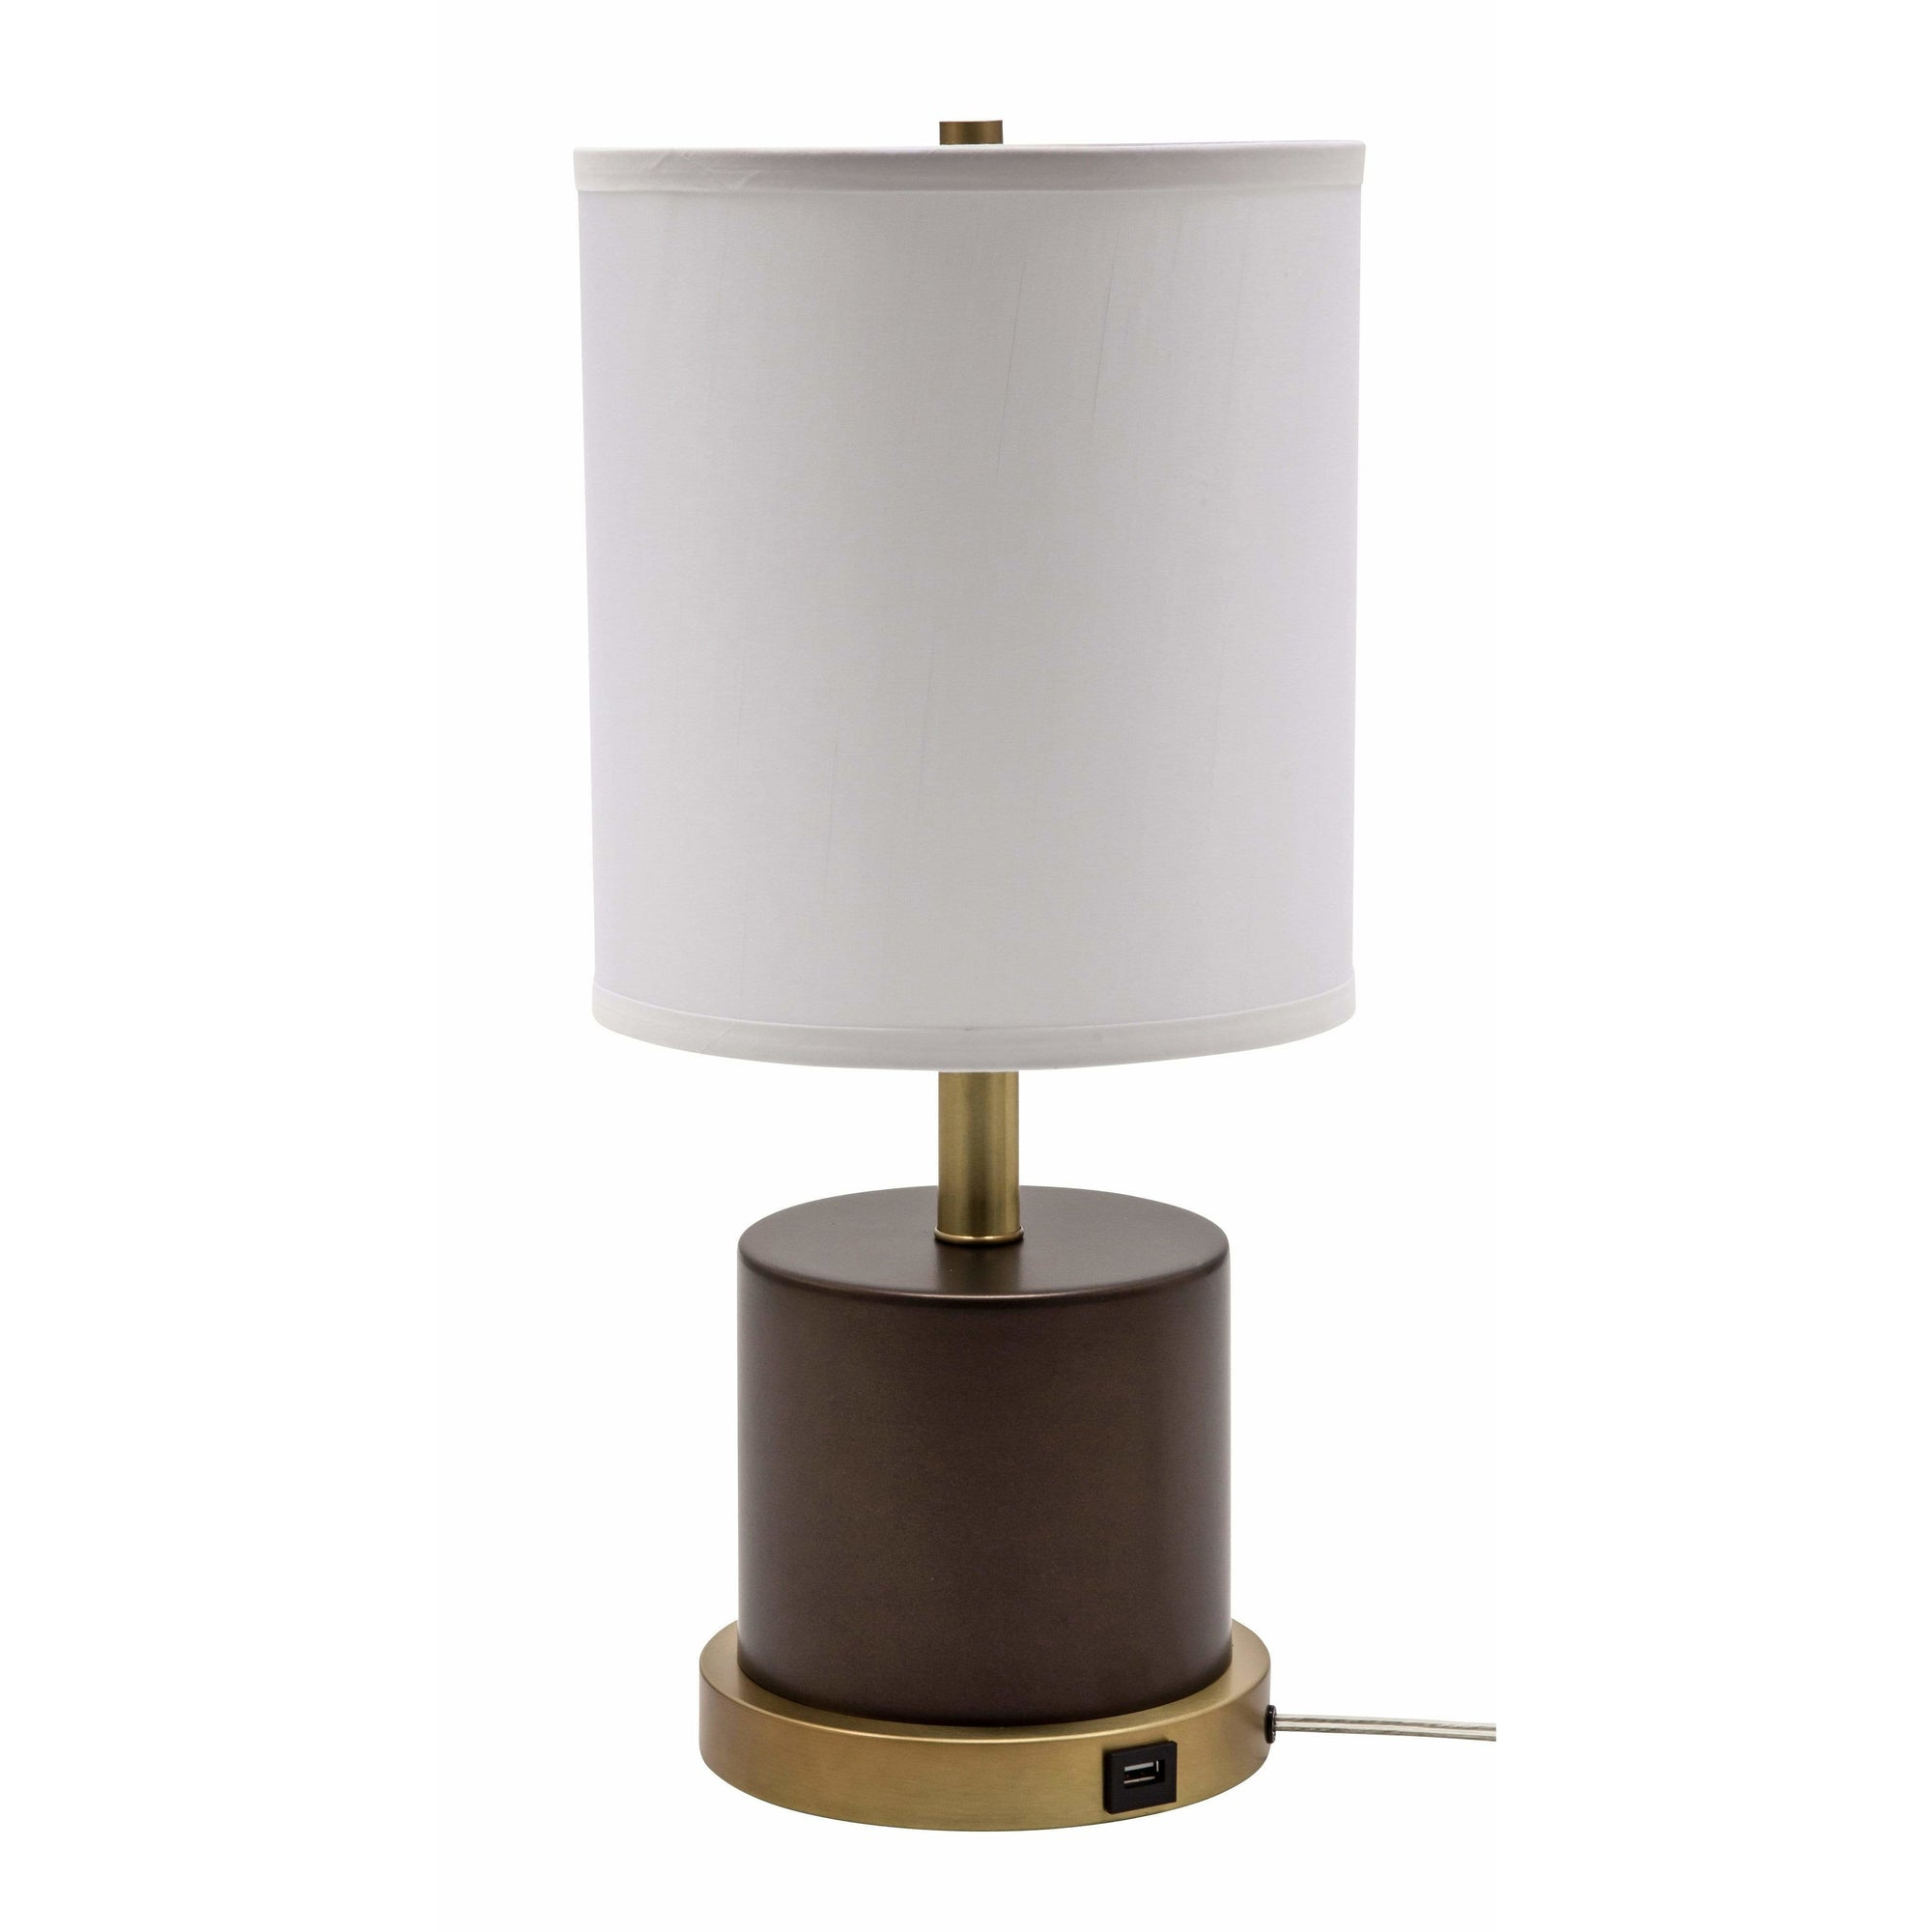 House Of Troy Table Lamps Rupert Table Lamp by House Of Troy RU752-CHB